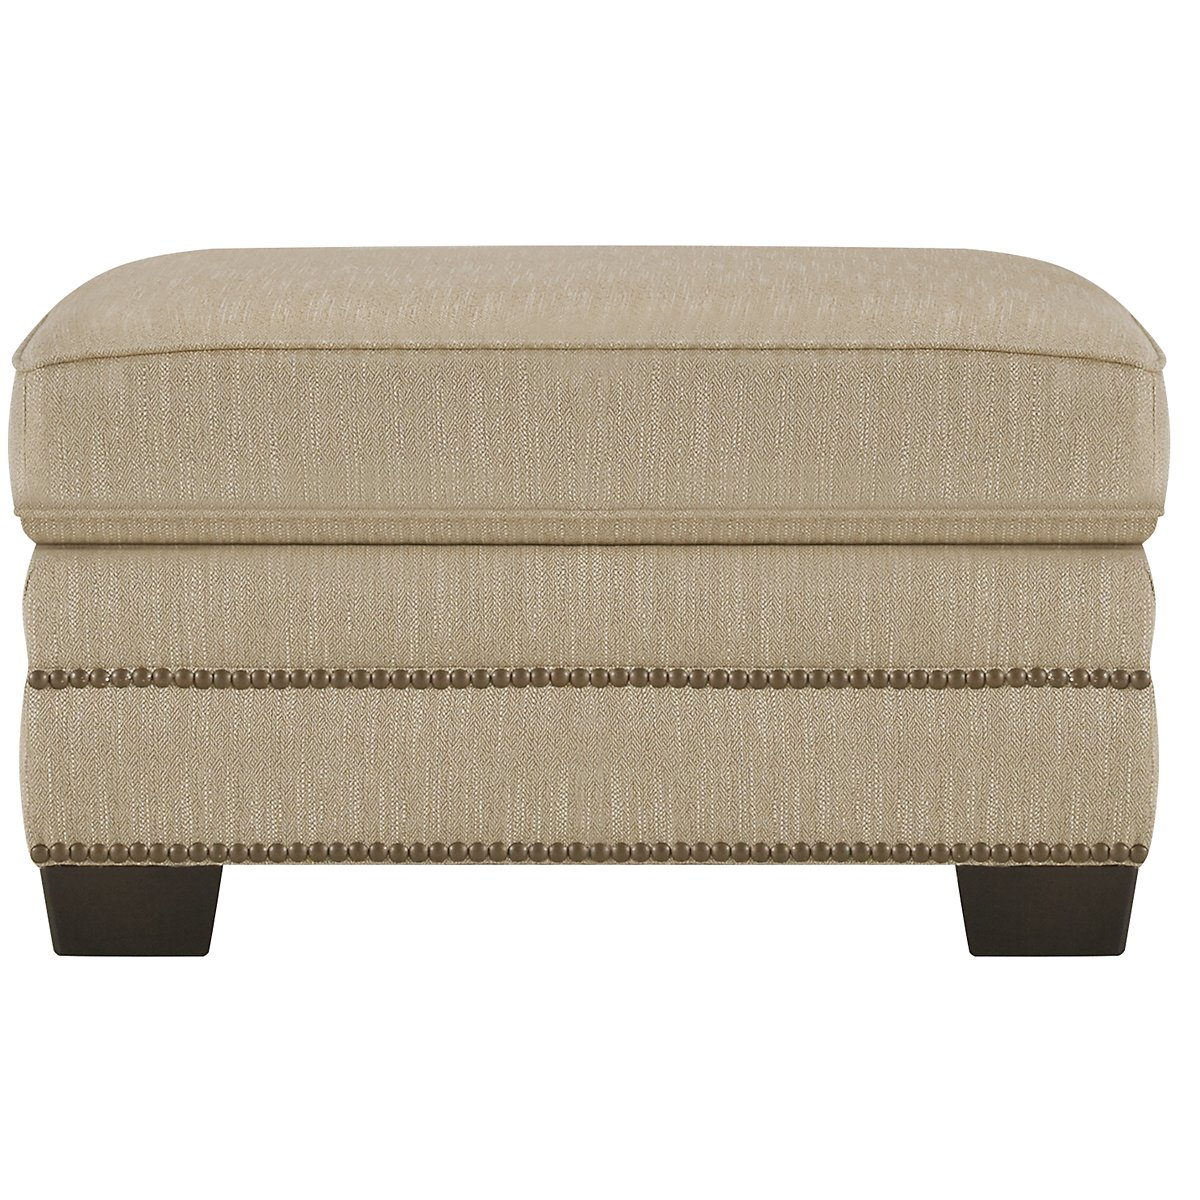 Erin Light Brown Fabric Ottoman